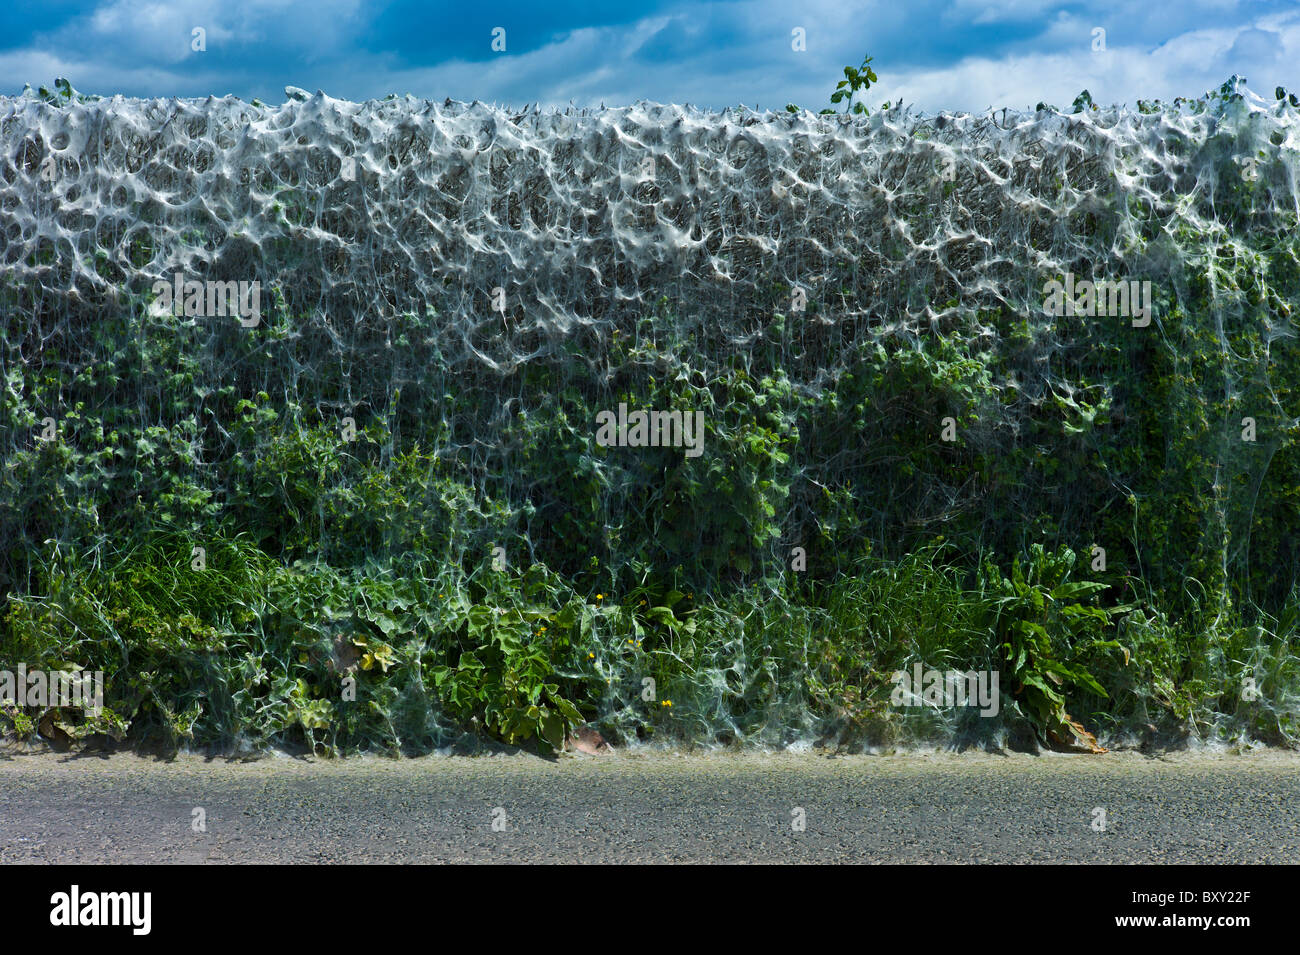 Larvae stage of Tent Moth, Eastern Tent Caterpillars, make tent of silk on host hedgerow in County Cork, Ireland - Stock Image